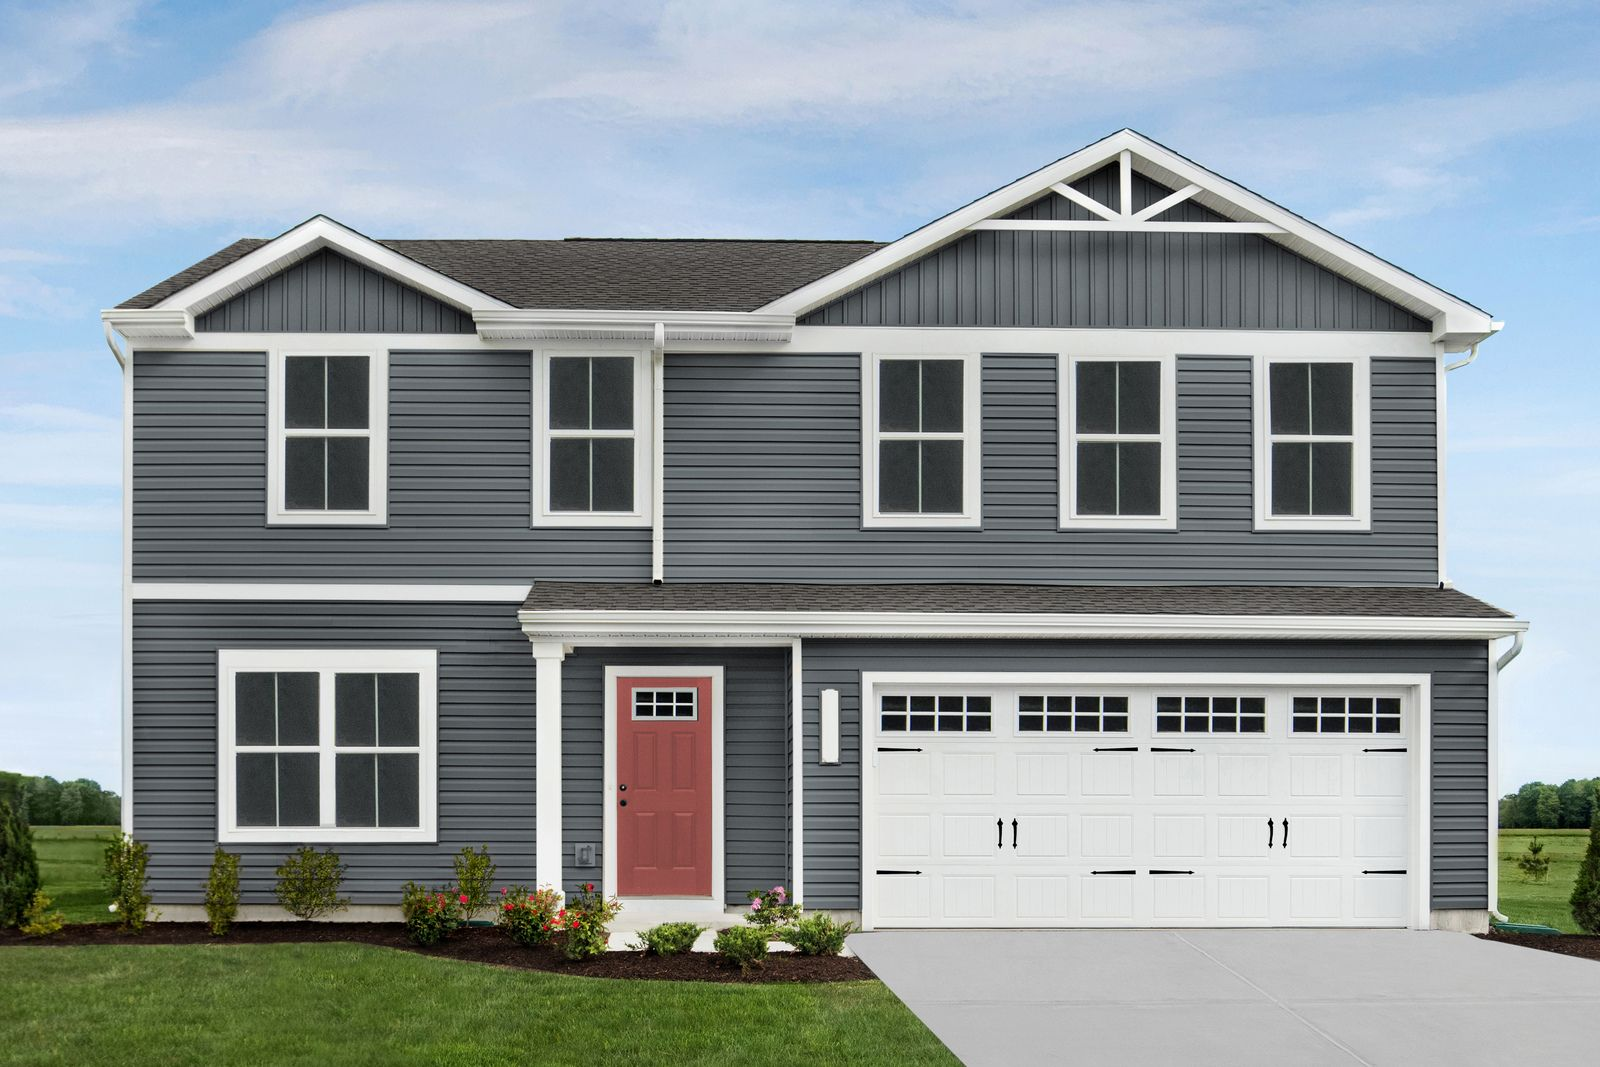 join the brookside greens VIP list today!:New 2-story homes in Norton Schools with a future pool & playground—less than 15 minutes from Fairlawn & Wadsworth conveniences—from $230s.Click here to join the VIP List today!